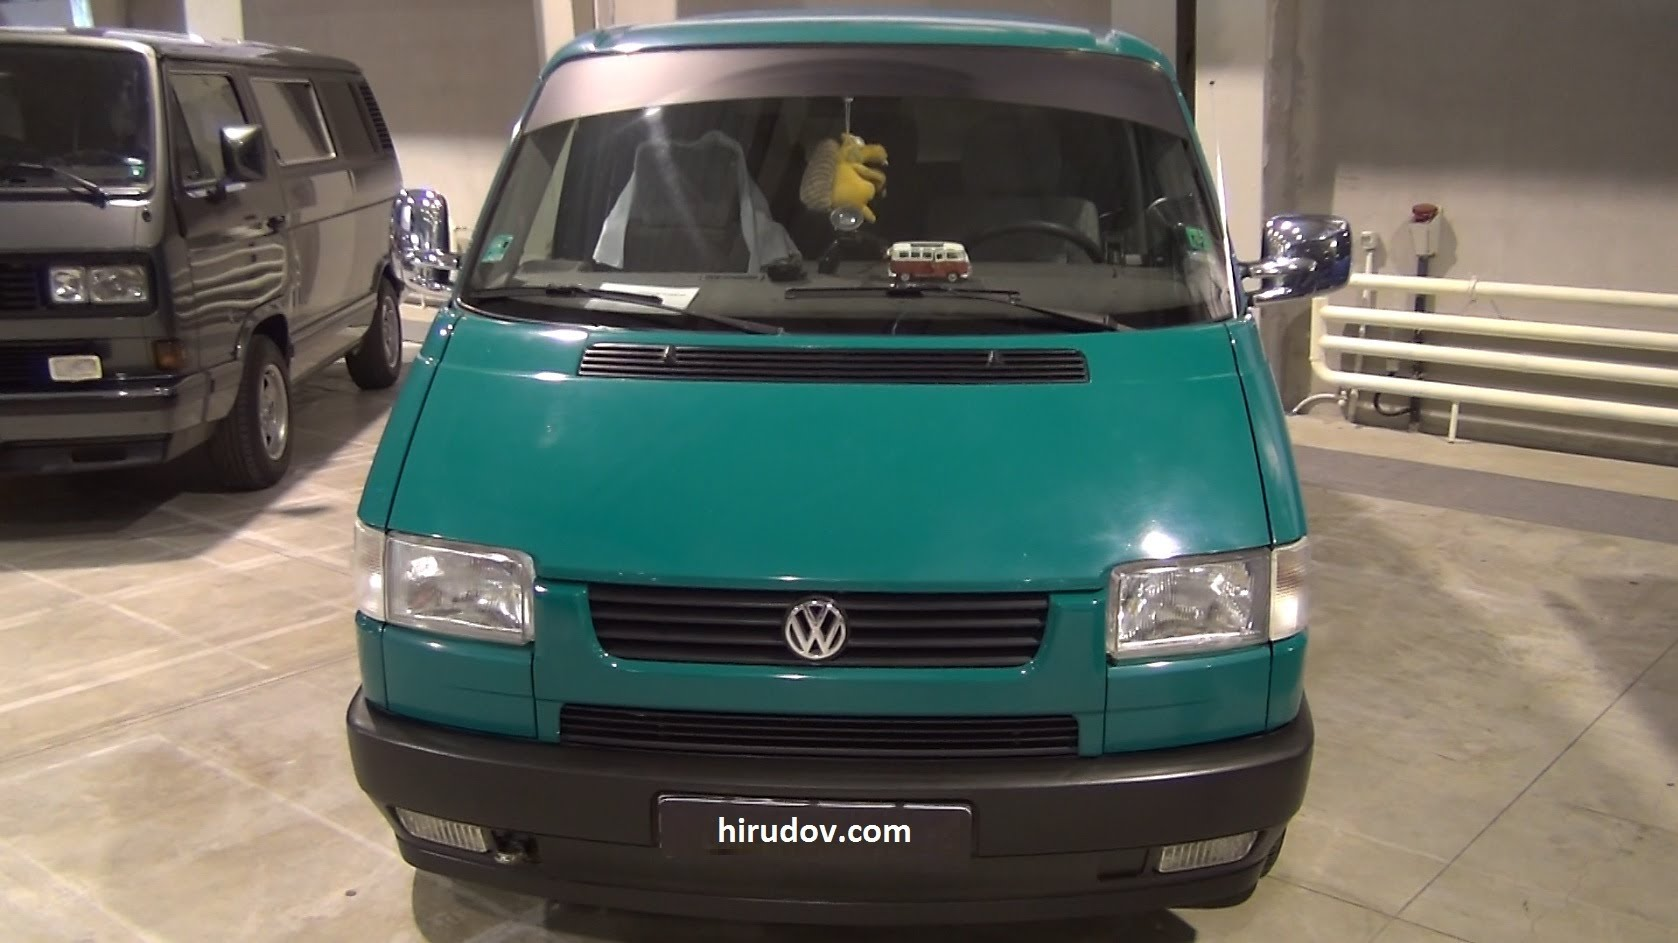 1992 volkswagen caravelle i t4 pictures information. Black Bedroom Furniture Sets. Home Design Ideas